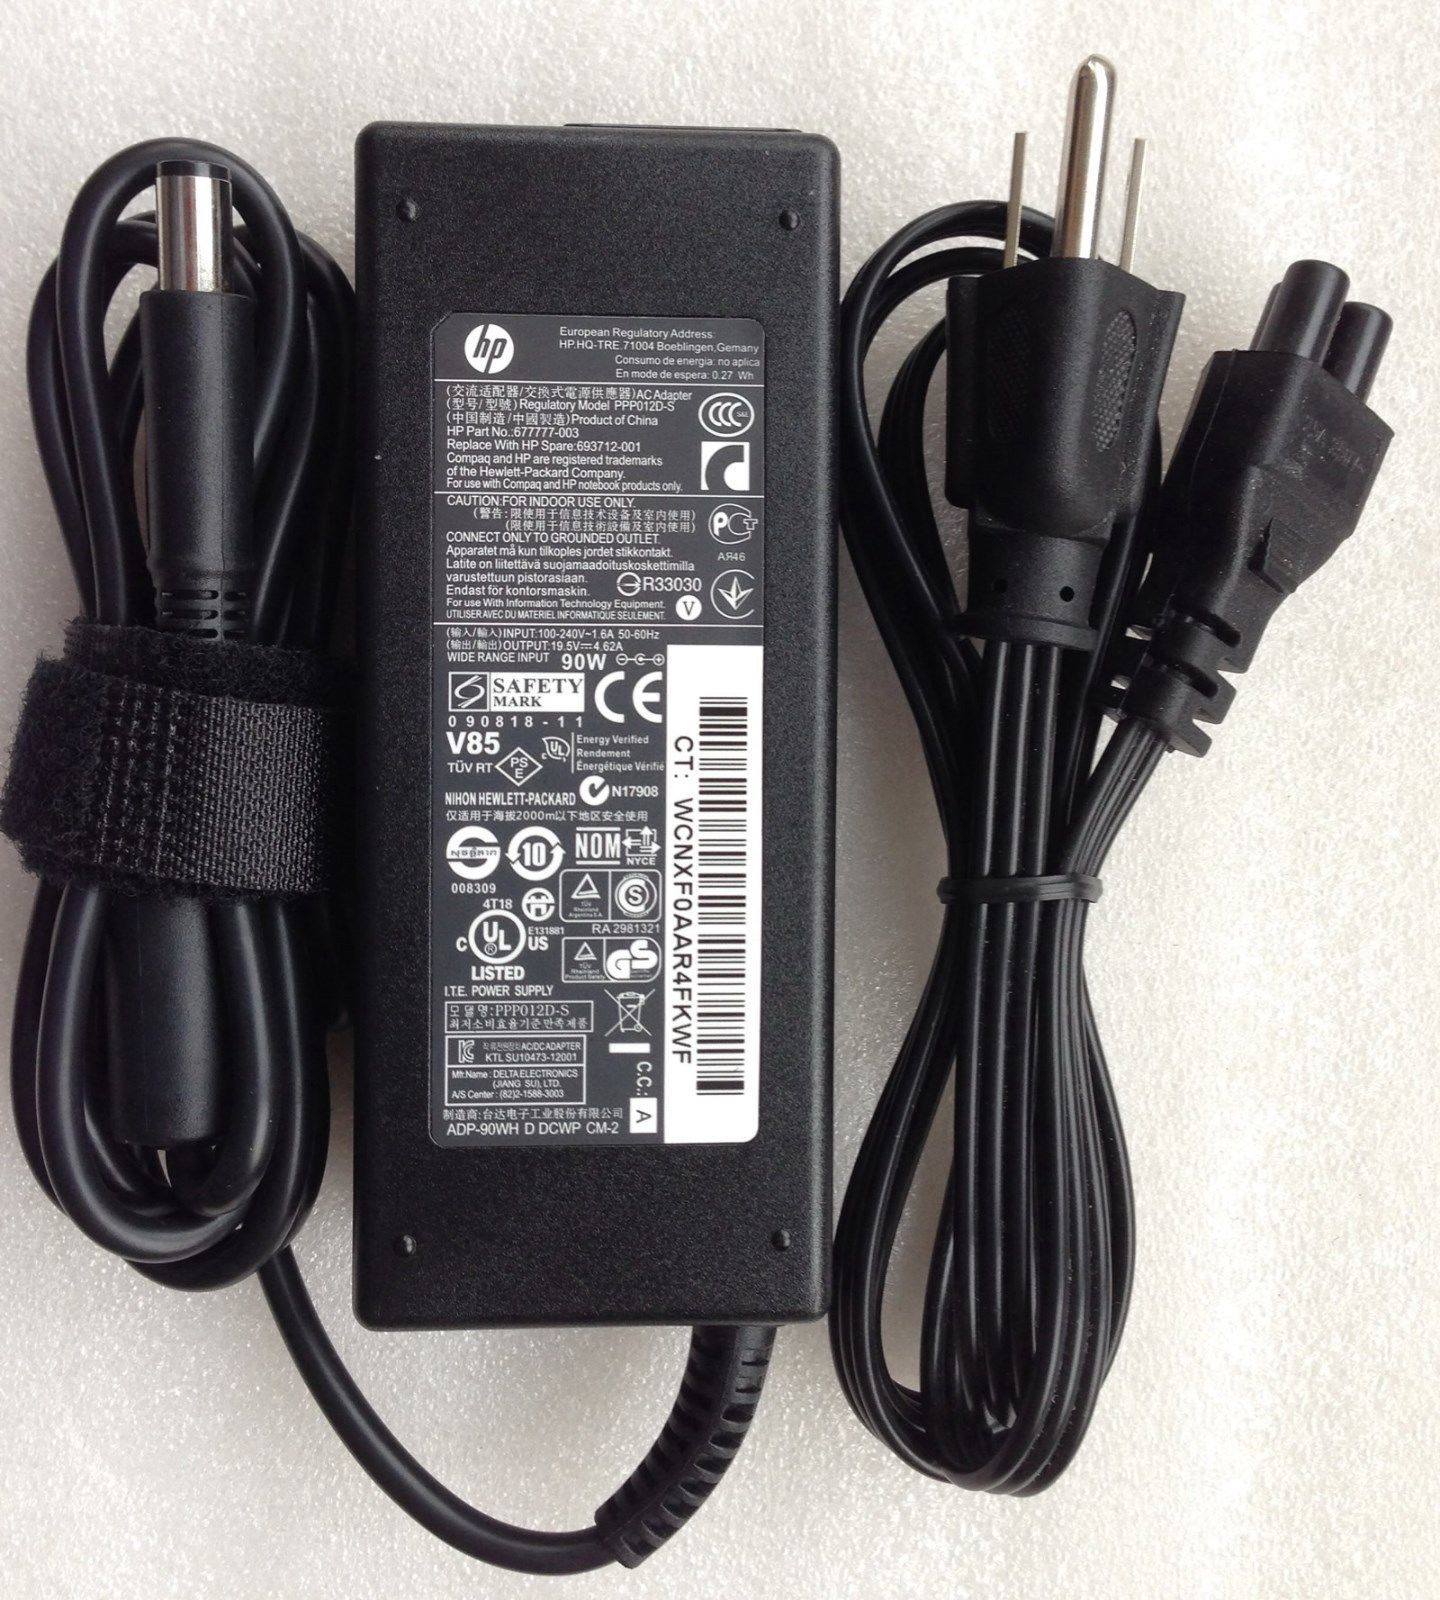 19.5V 4.62A HP ENVY m6-1184ca 677777-001 Chargeurs